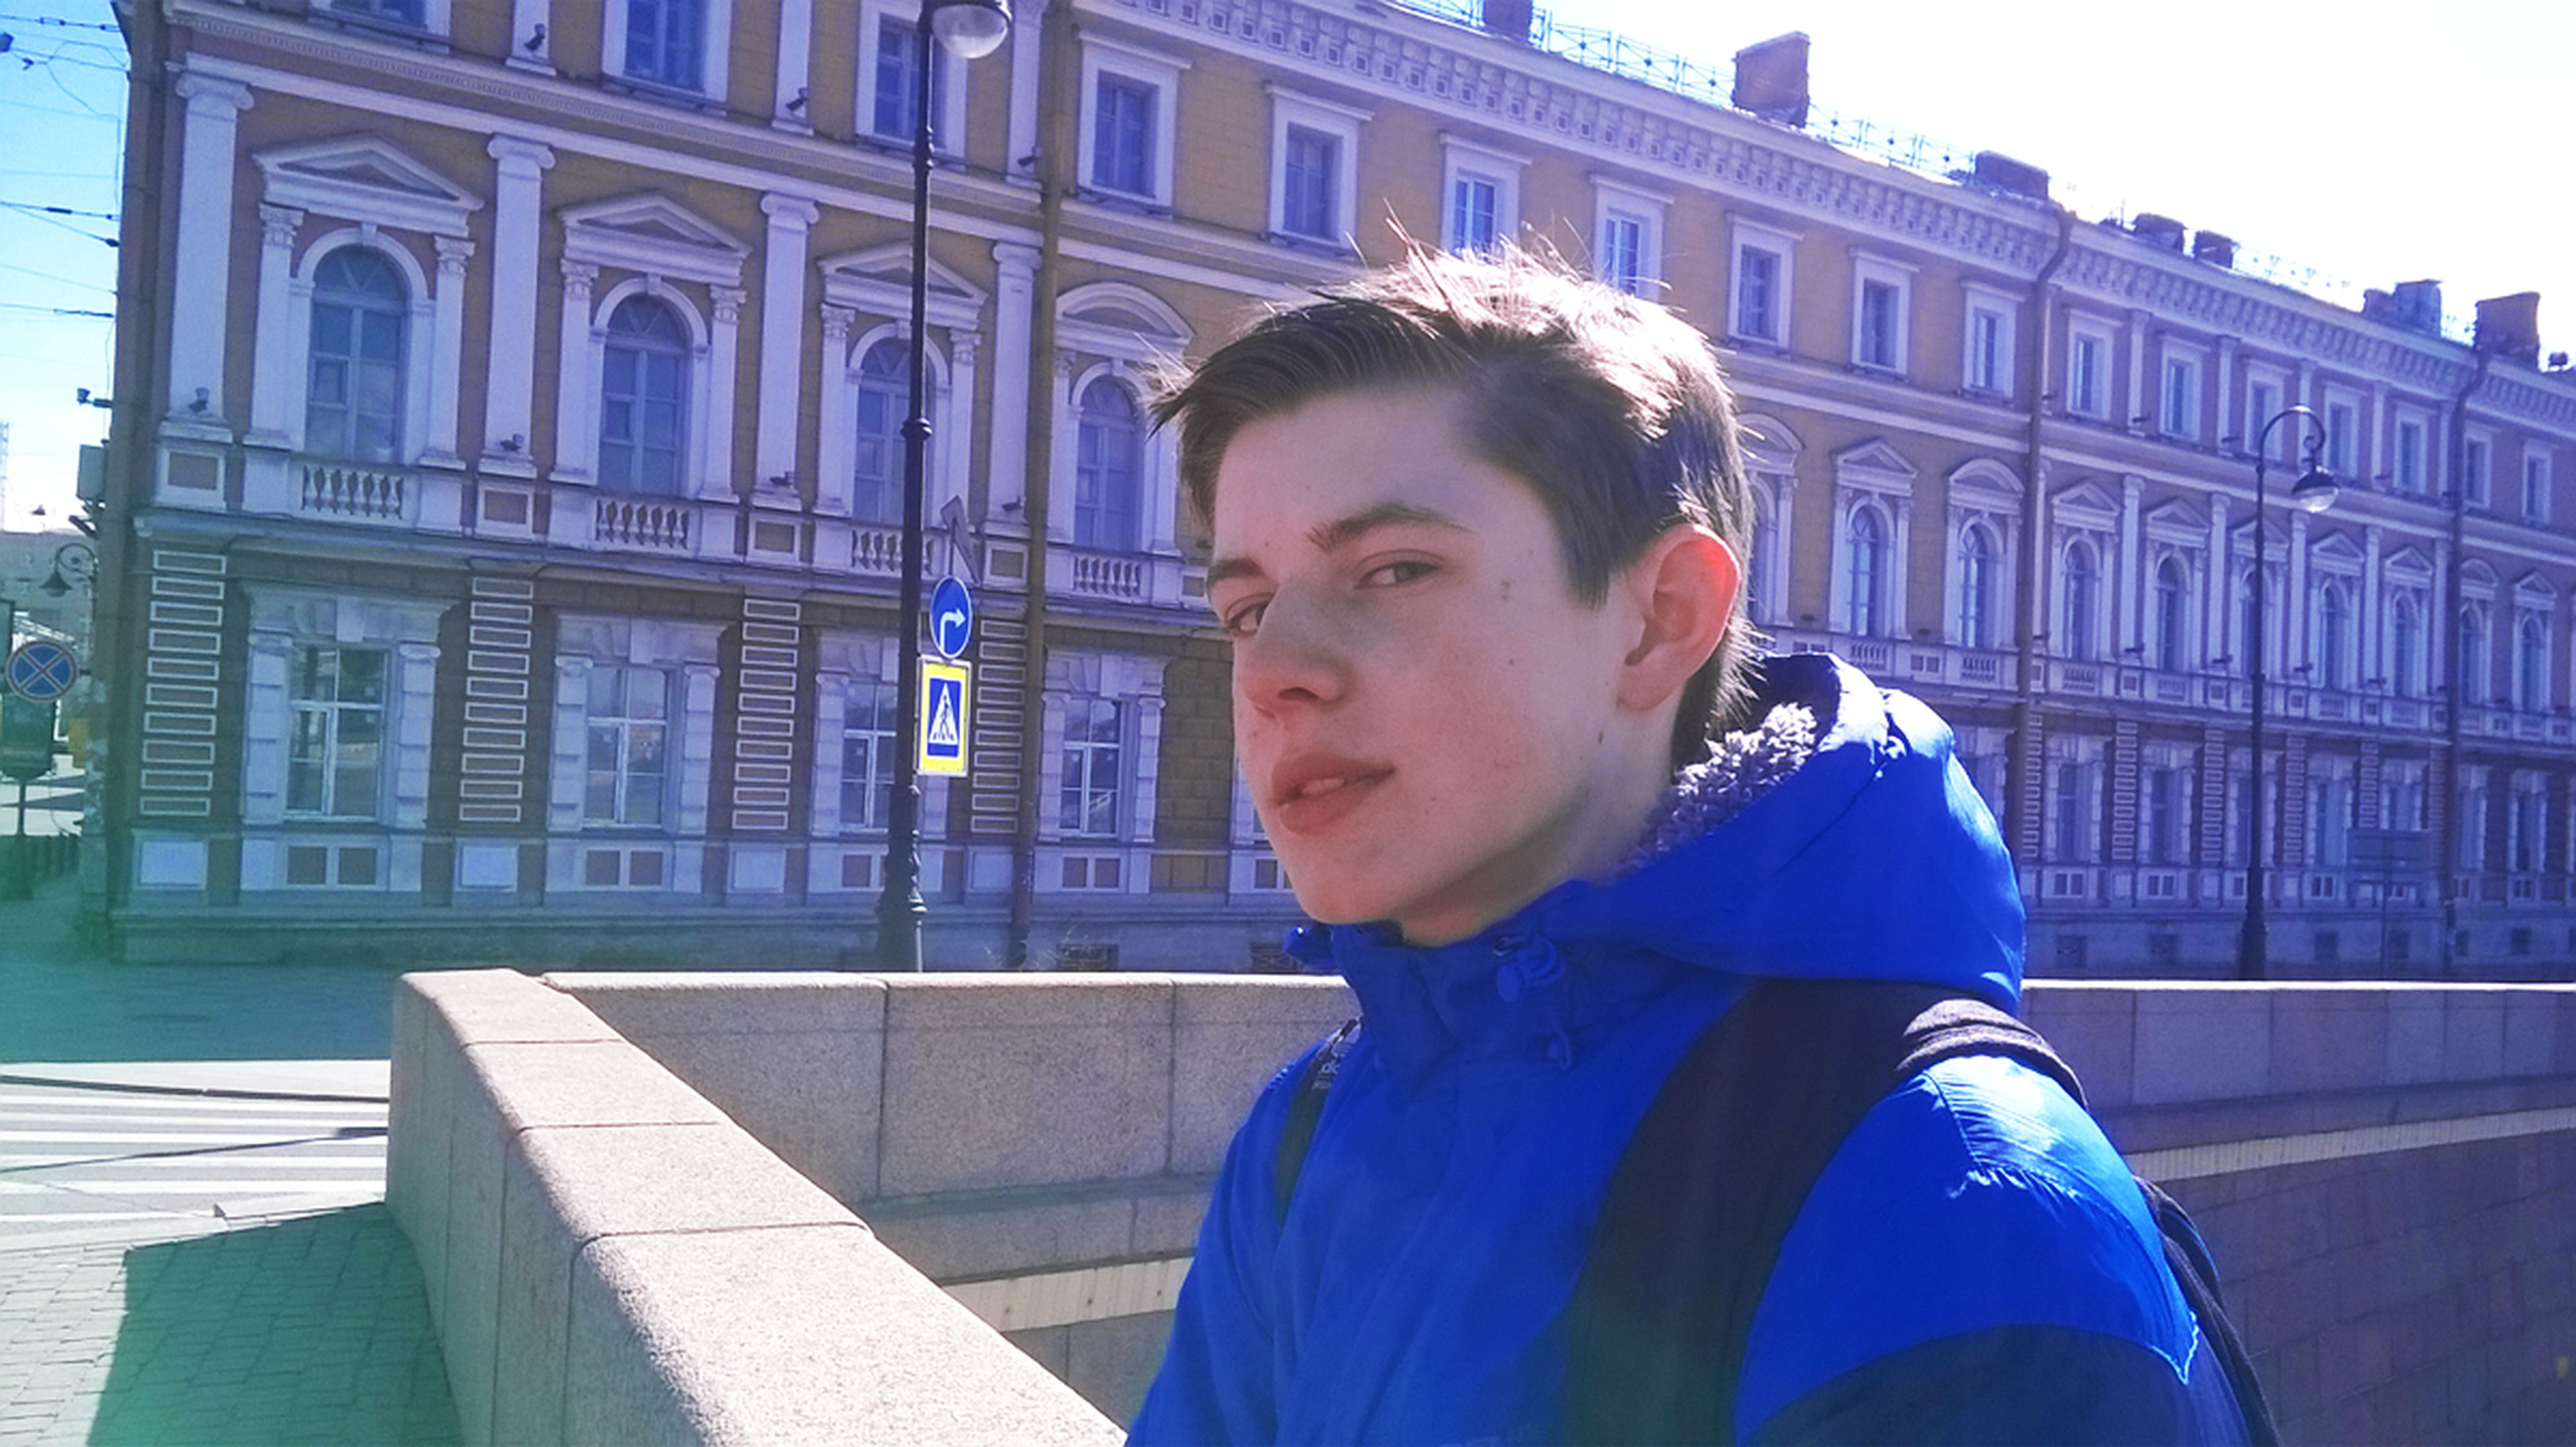 real people, architecture, built structure, one person, building exterior, lifestyles, leisure activity, young adult, young men, outdoors, day, casual clothing, headshot, side view, looking at camera, portrait, city, warm clothing, close-up